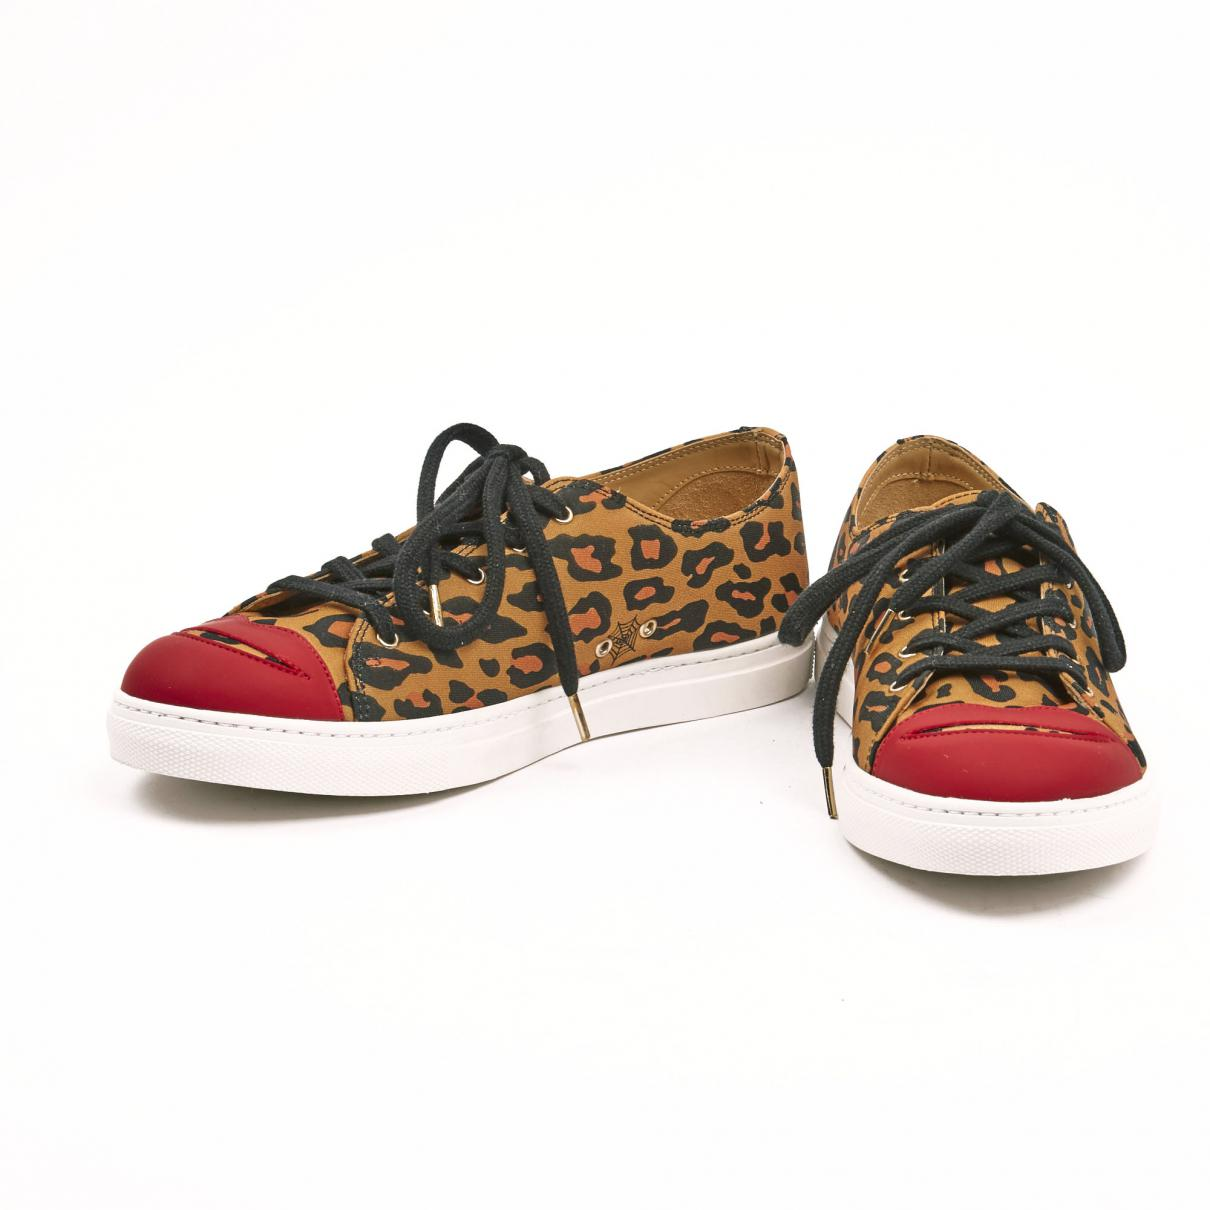 Pre-owned - Canvas trainers Charlotte Olympia Buy Cheap Pay With Paypal Cheap Great Deals WpjJl